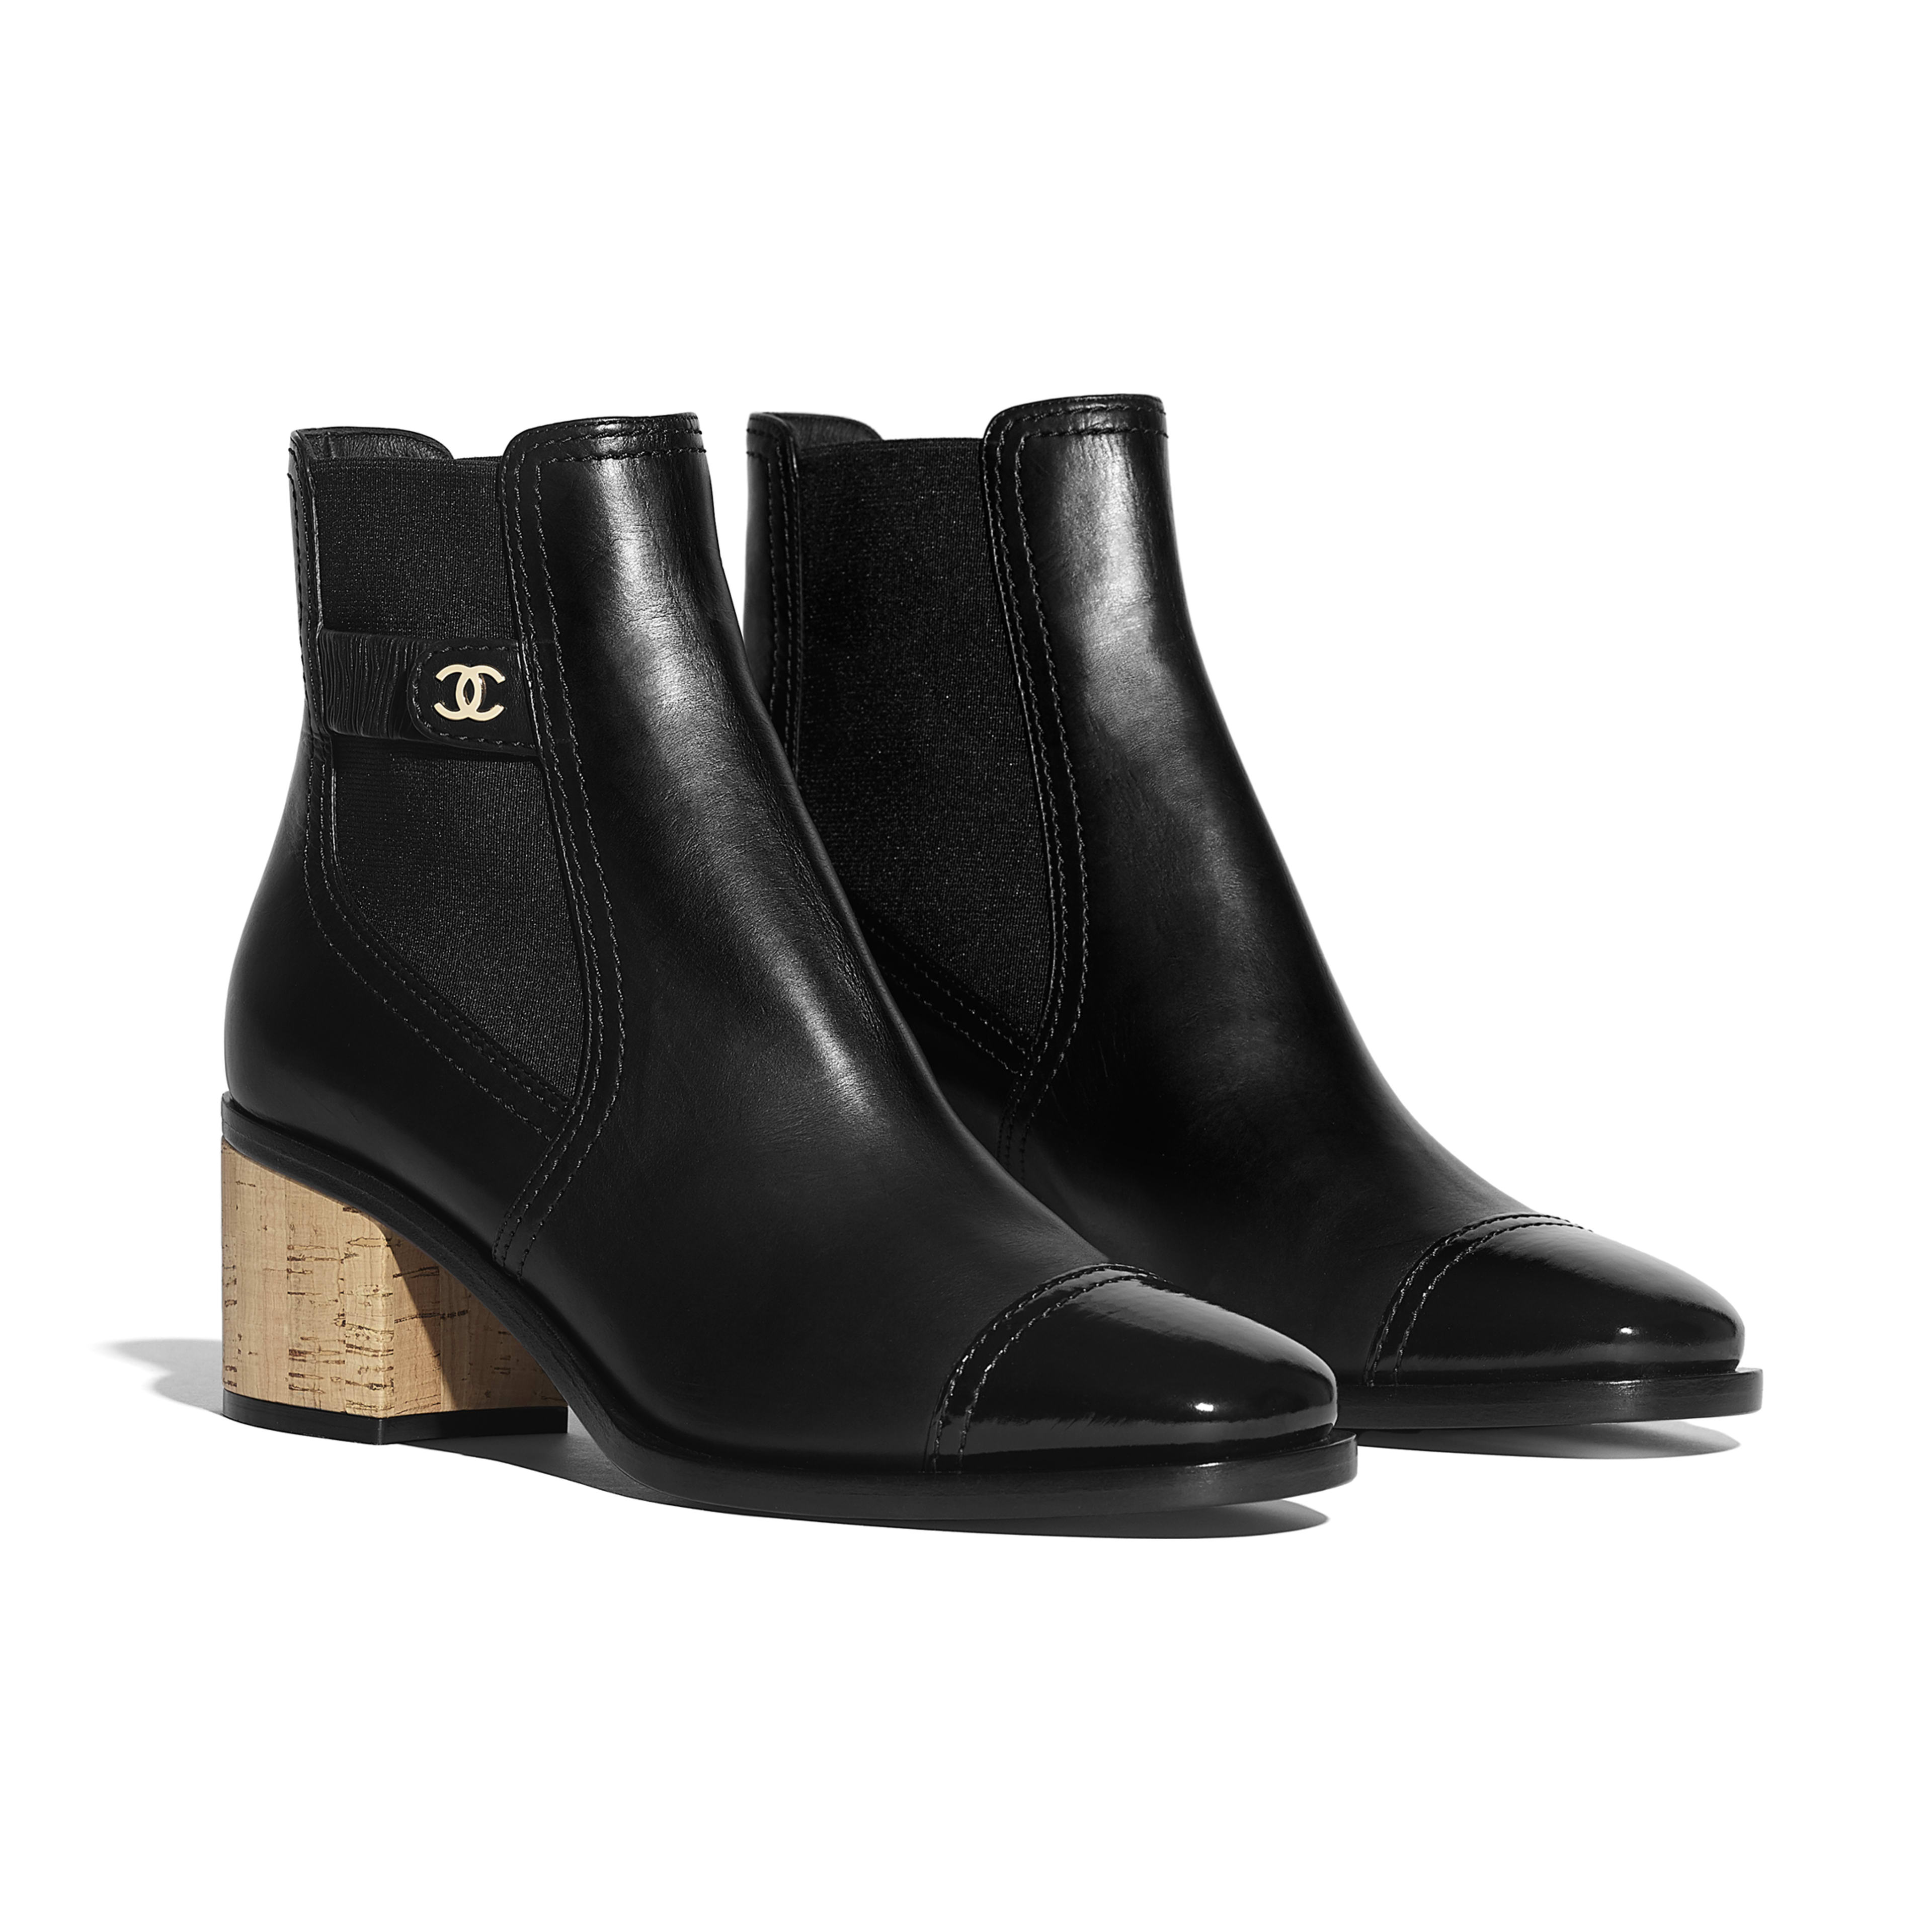 Ankle Boots - Black - Calfskin, Patent Calfskin & Cork - Alternative view - see full sized version